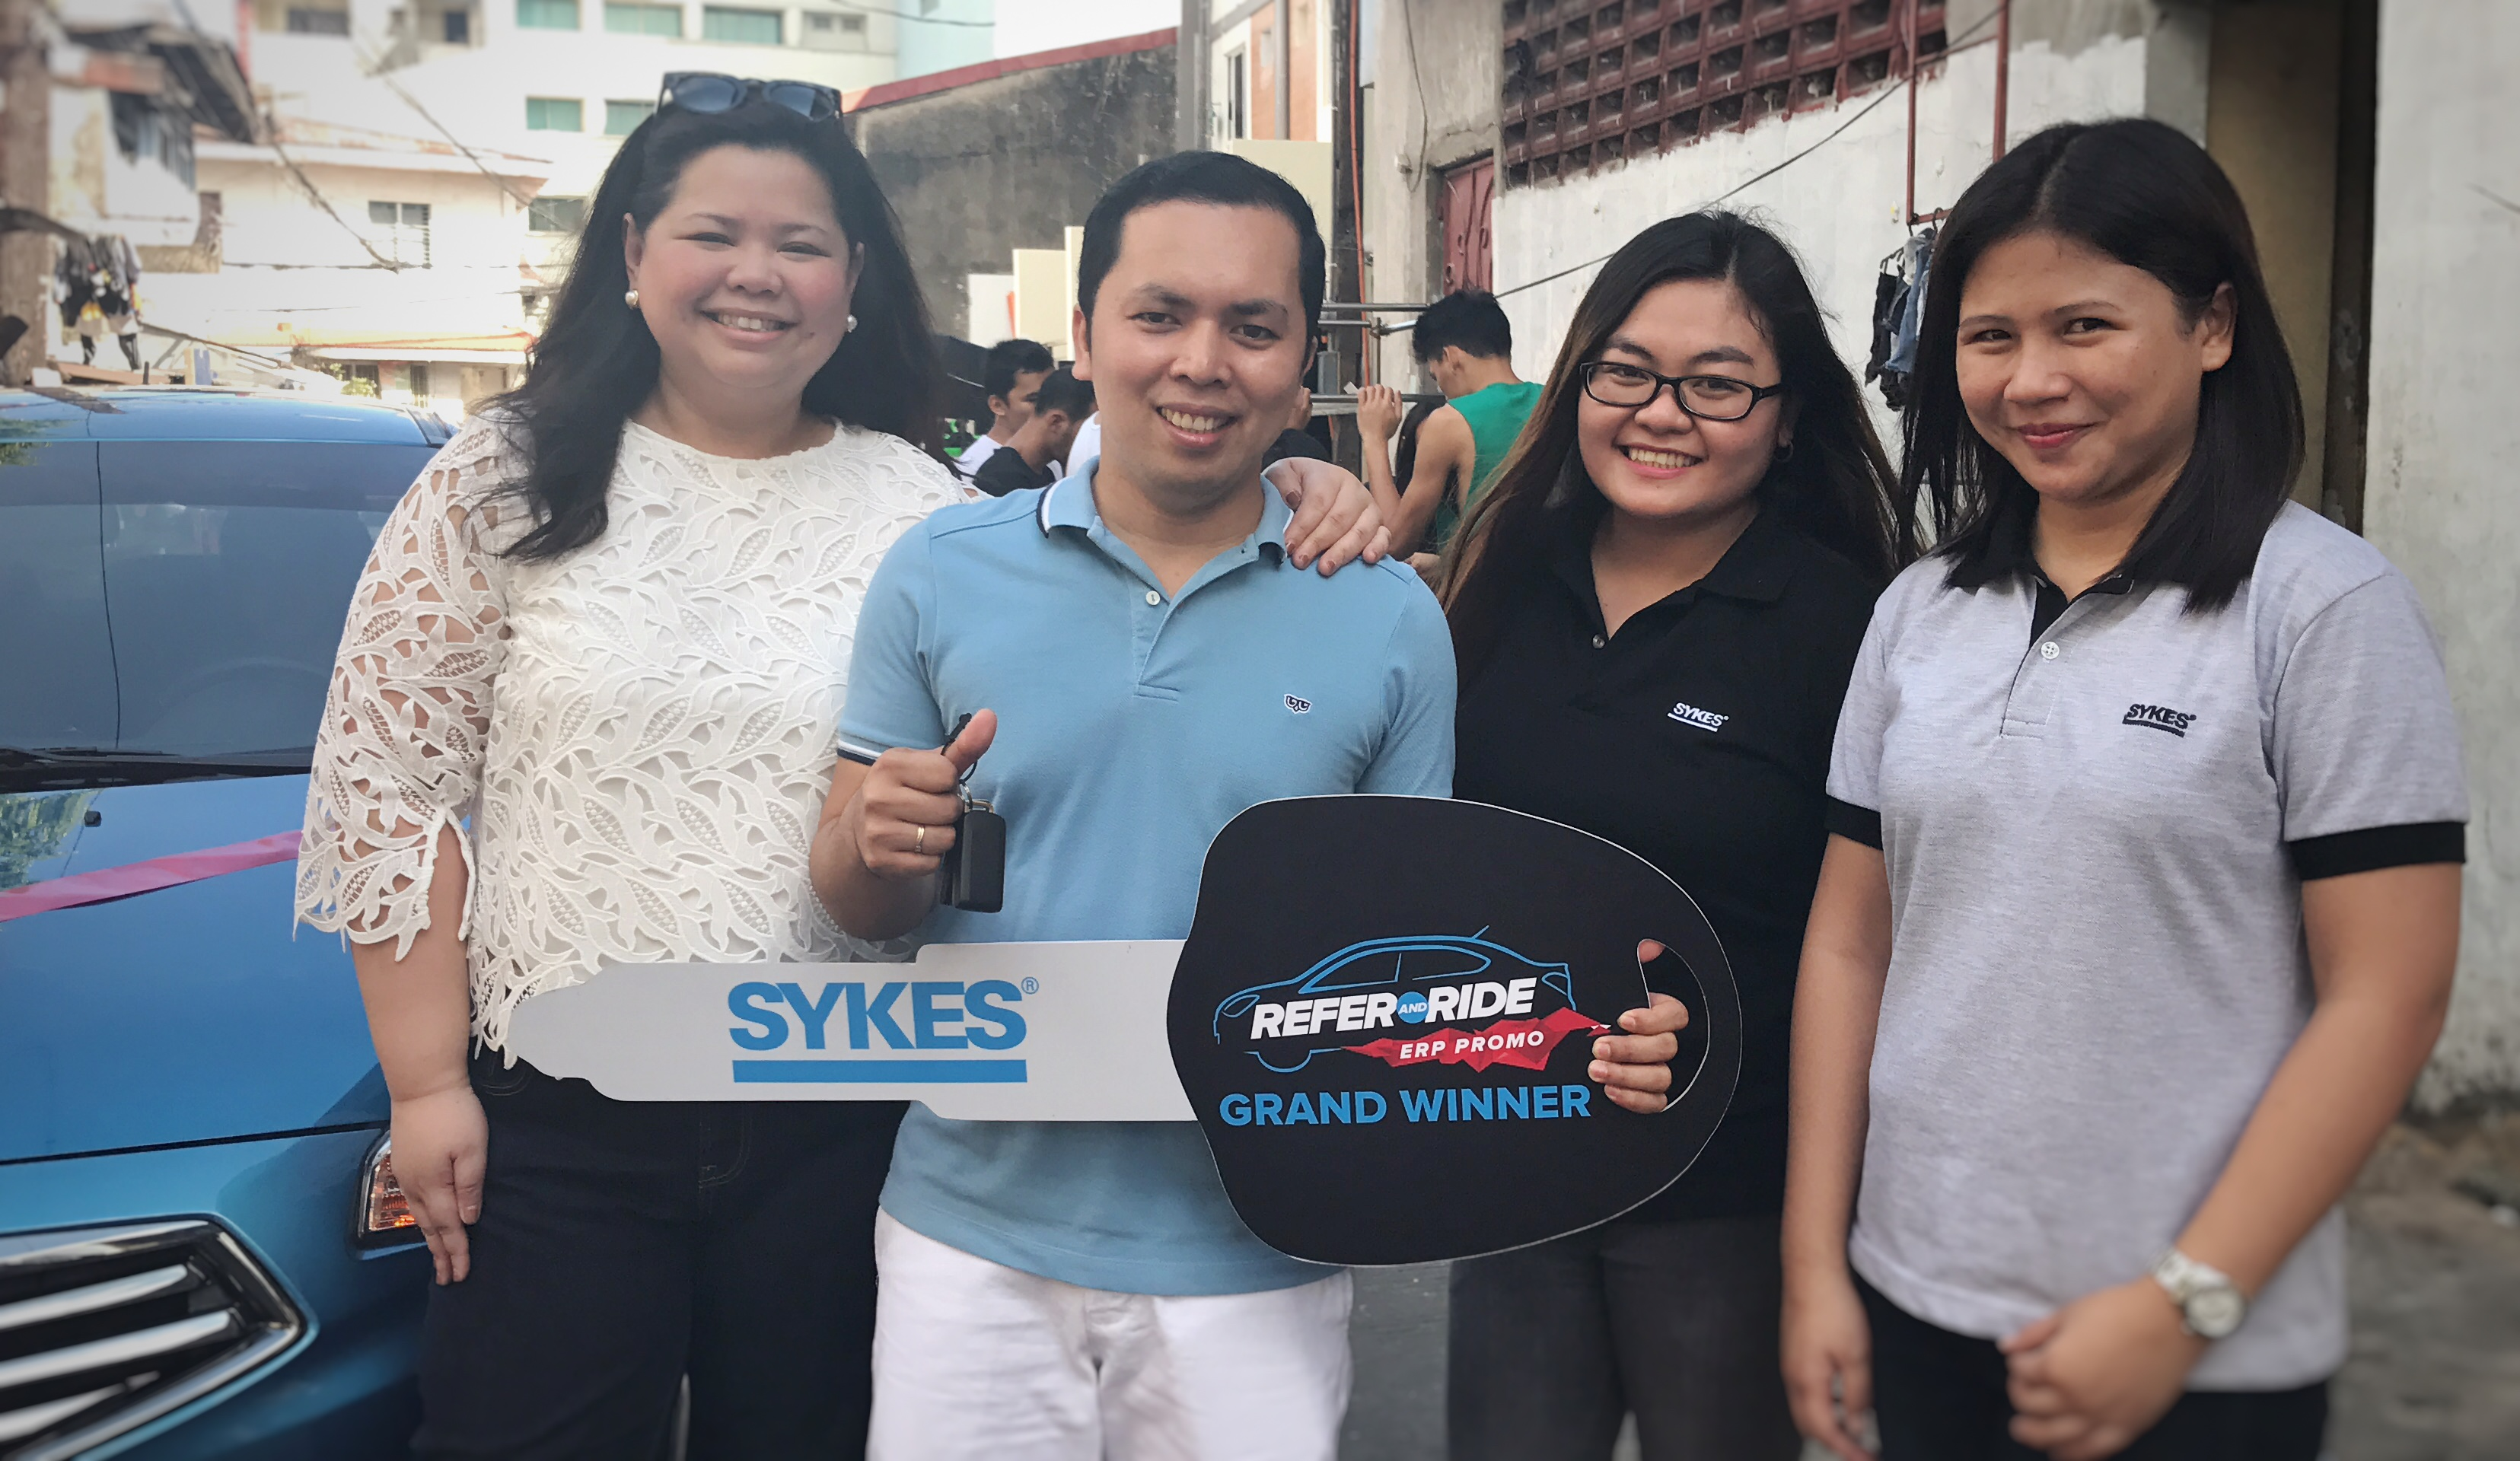 SYKES Gives Away a Brand-New Car to Lucky Employee